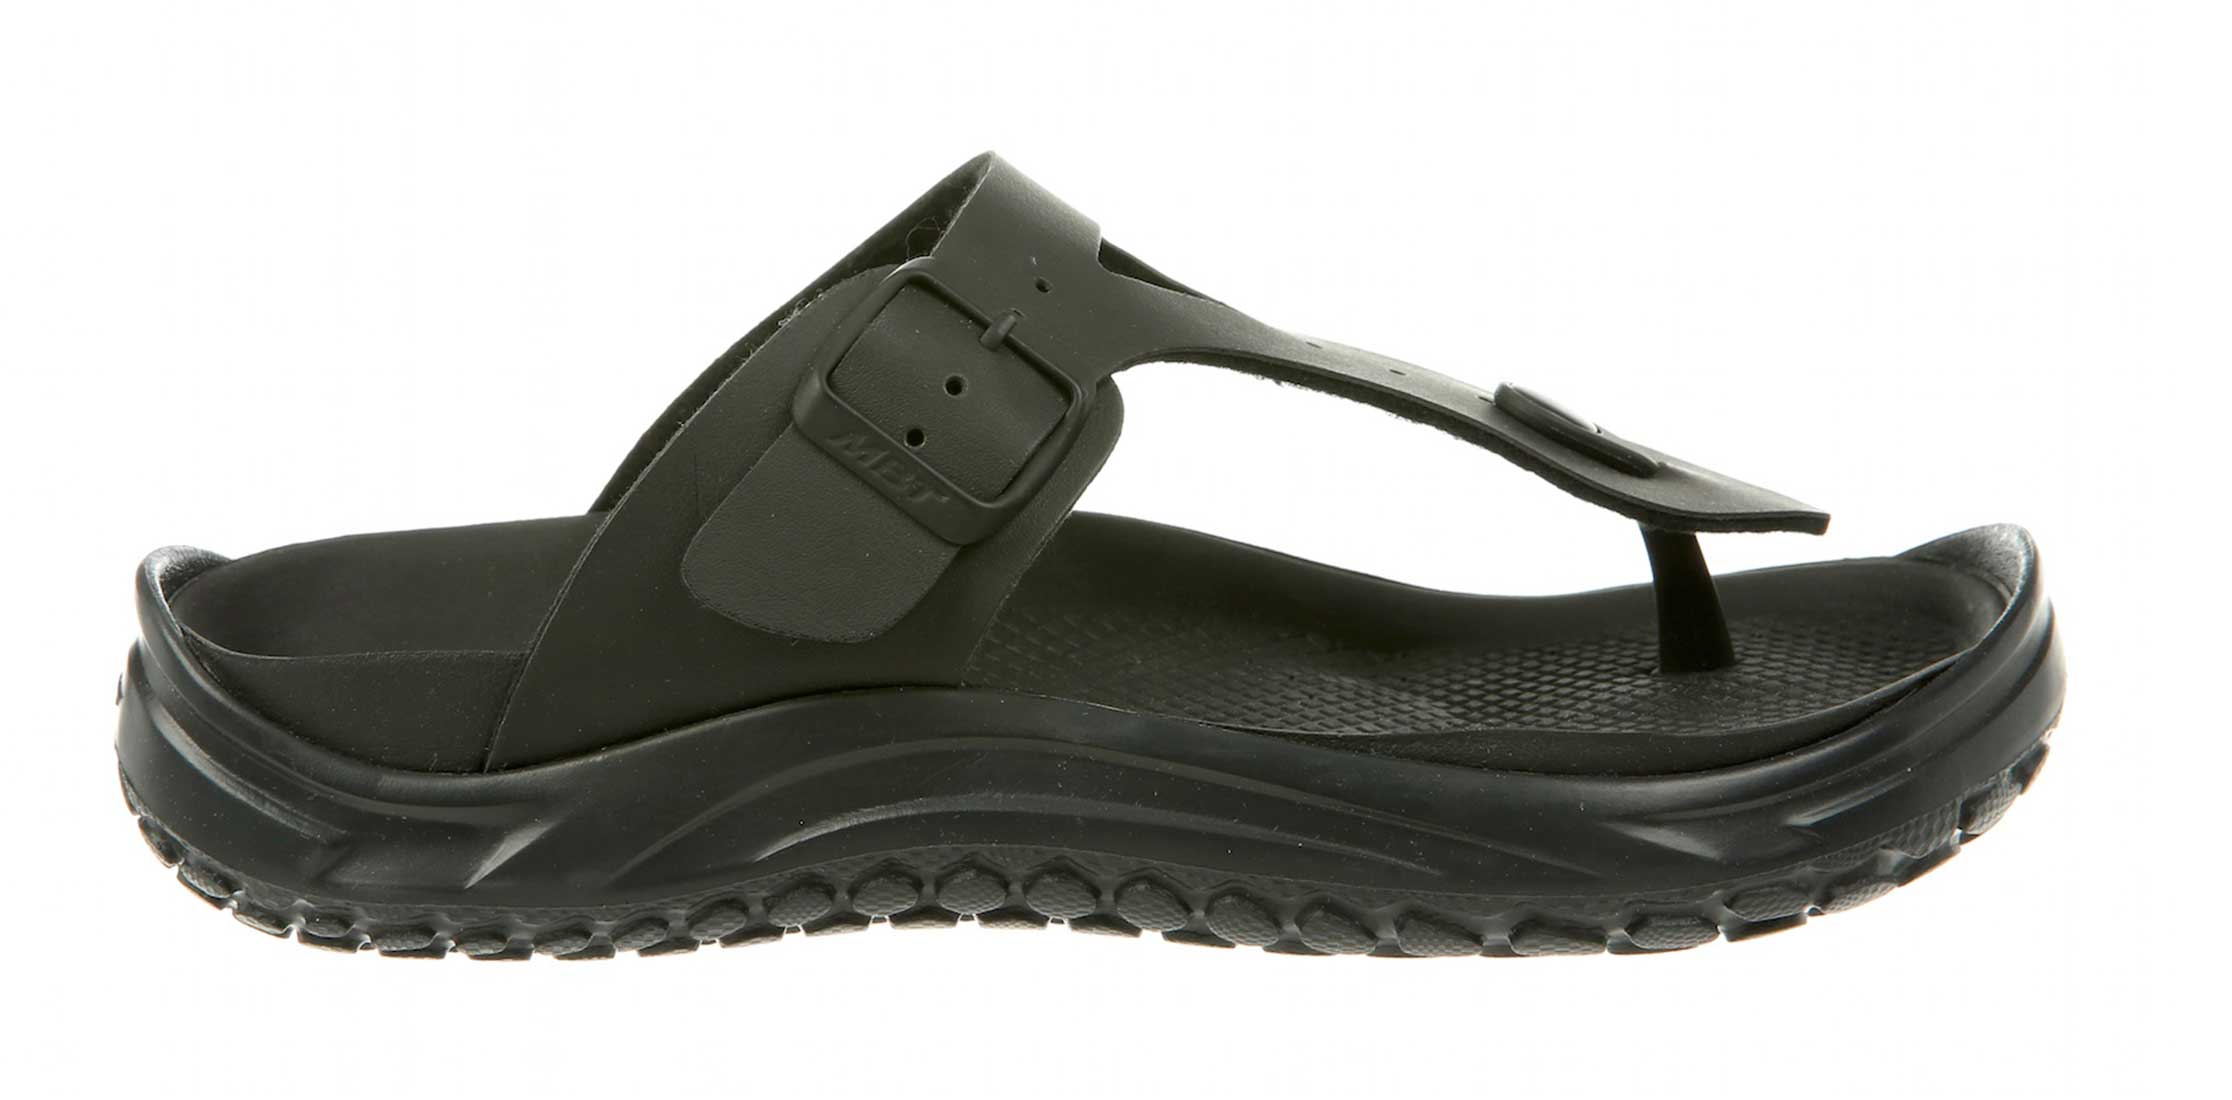 9b5d2c263126 Details about MBT Shoes Women s Meru Recovery Sandal